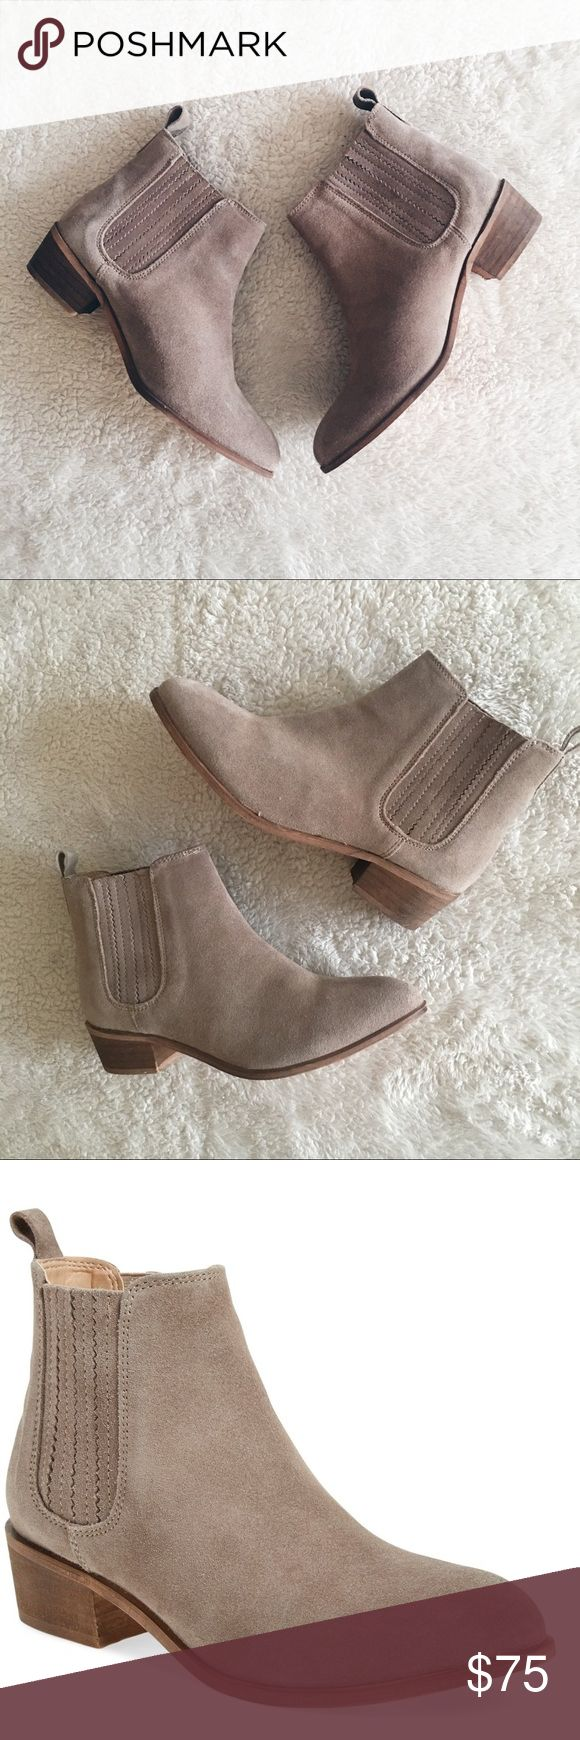 """•Steve Madden• Nylie Chelsea Boot Super cute! Distressed finish, chelsea boot 1 1/2"""" heel  4 1/2"""" boot shaft. Pull-on style. Leather upper/synthetic lining and sole. No trades, please *Offers are welcomed* Steve Madden Shoes Ankle Boots & Booties"""